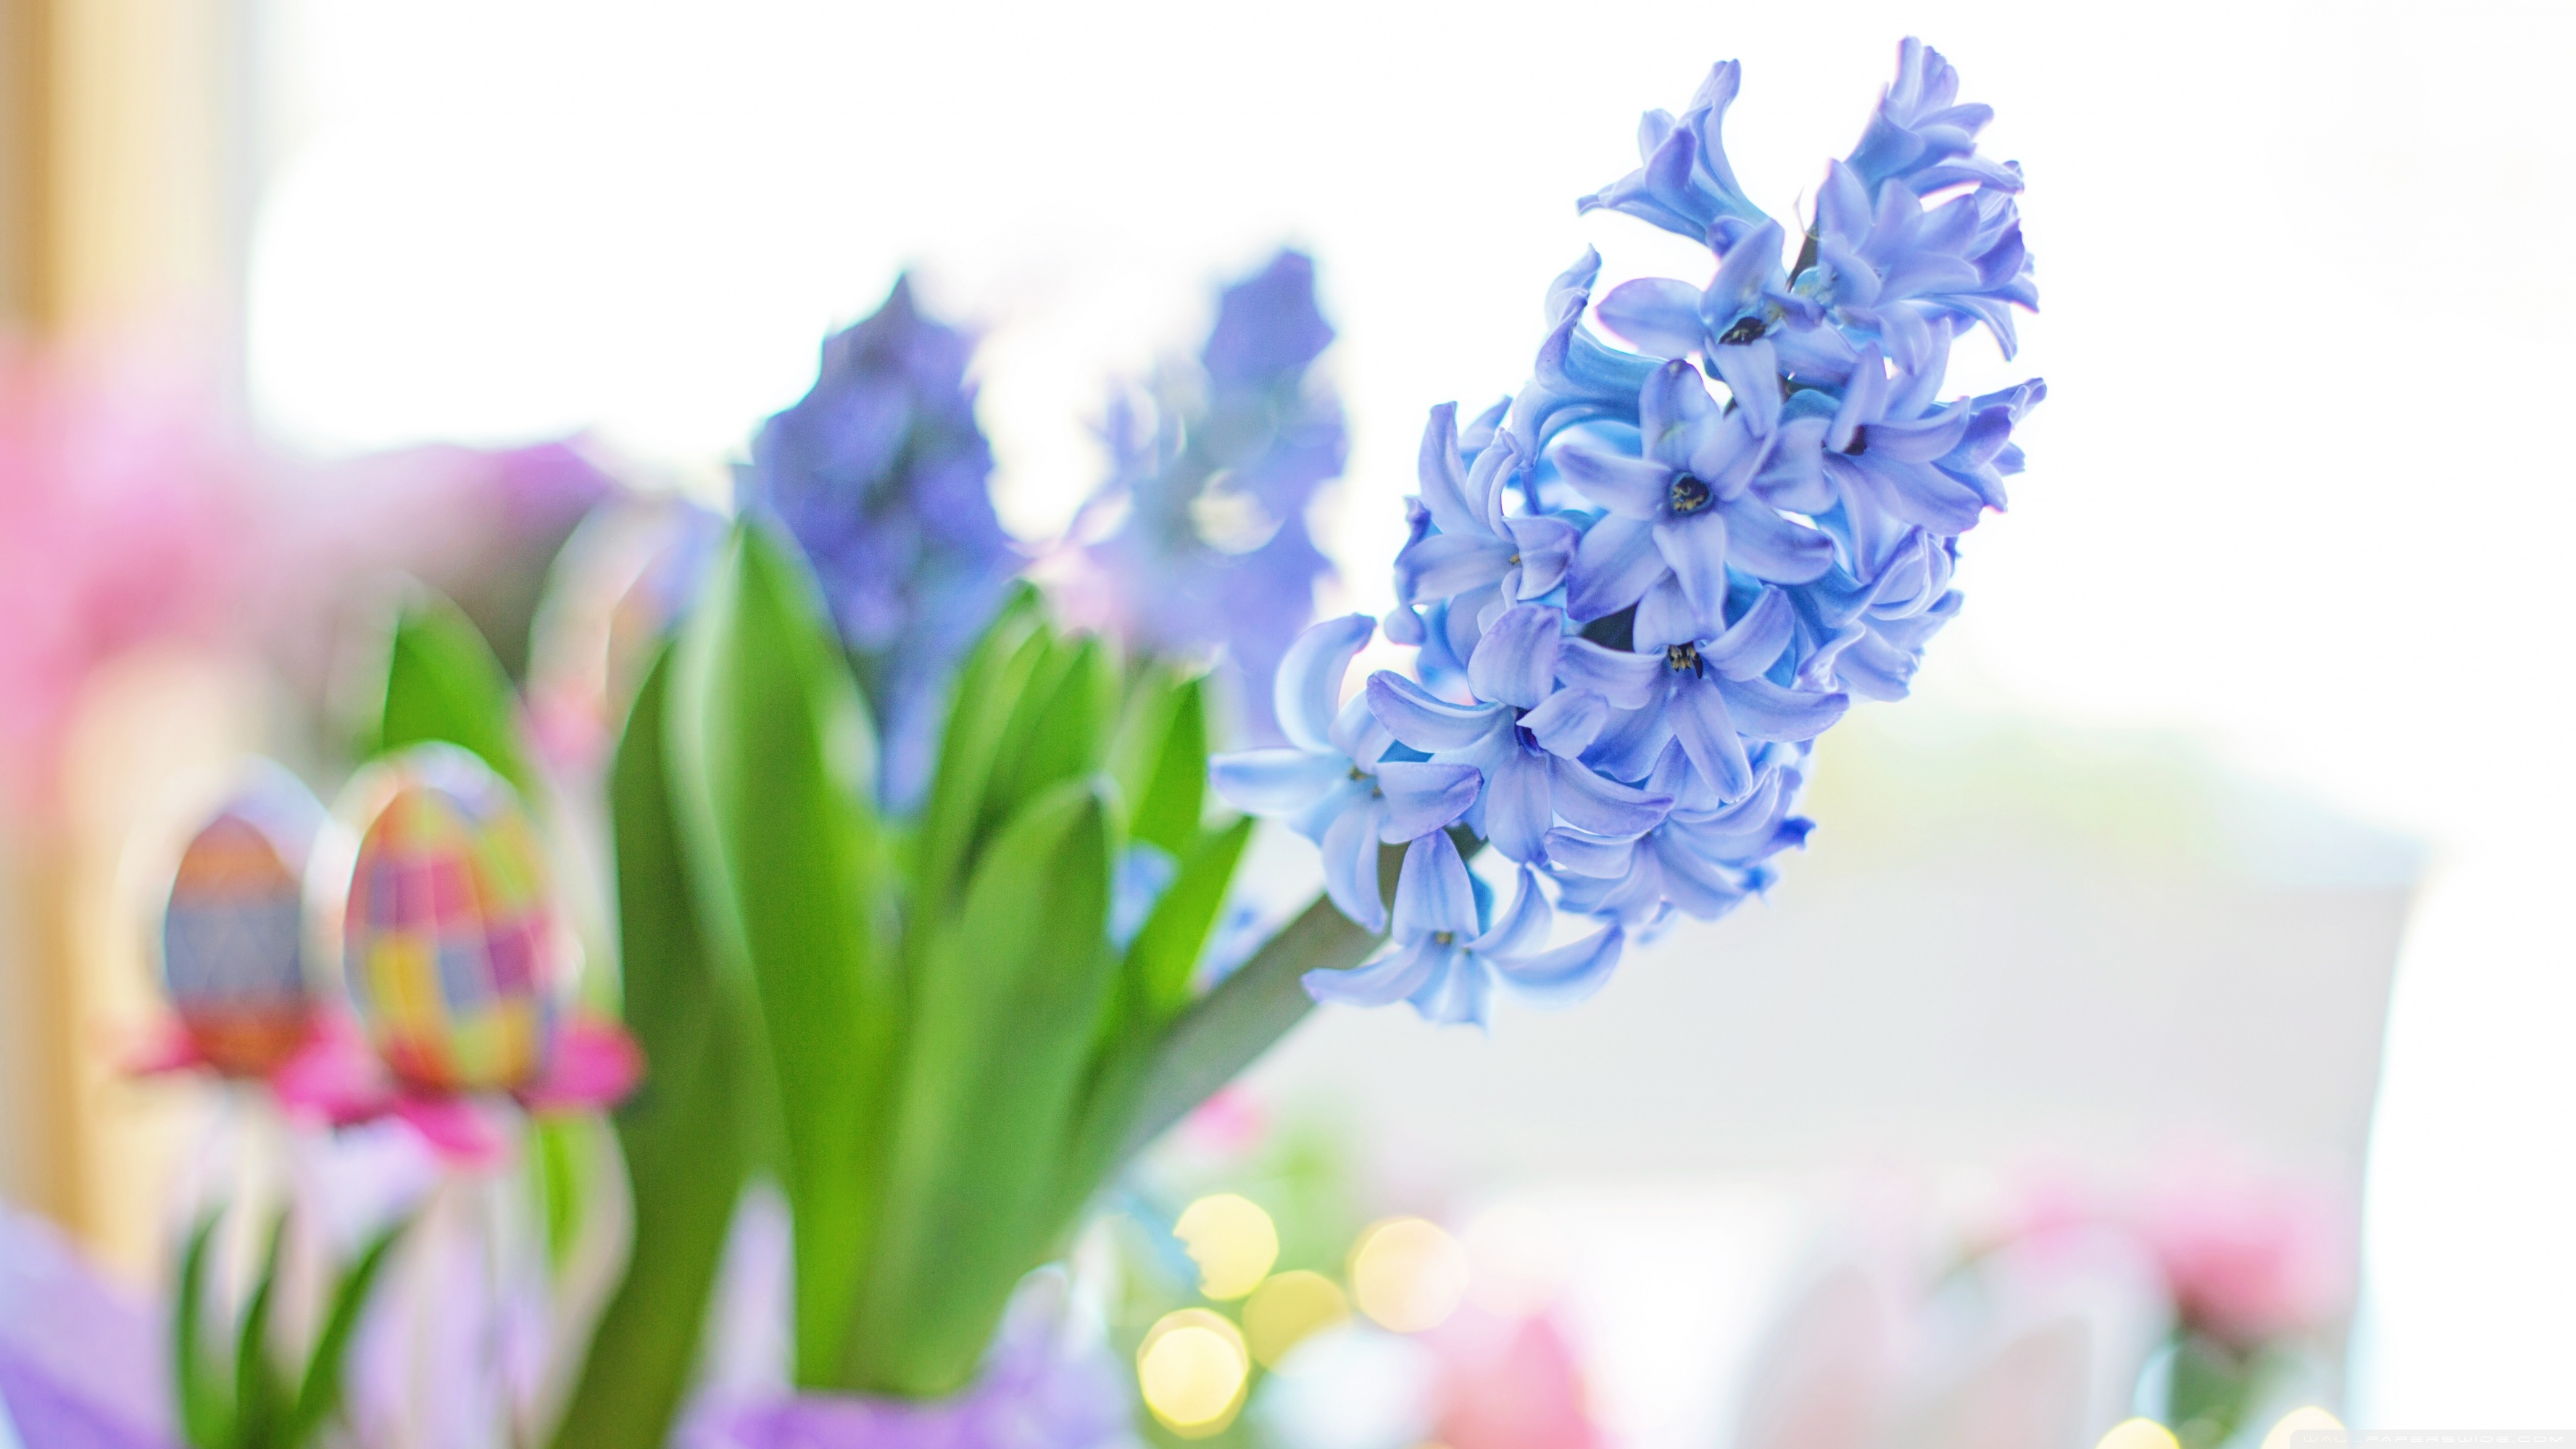 Easter 2020 Blue Hyacinth Flower Spring Ultra HD Desktop 3554x1999